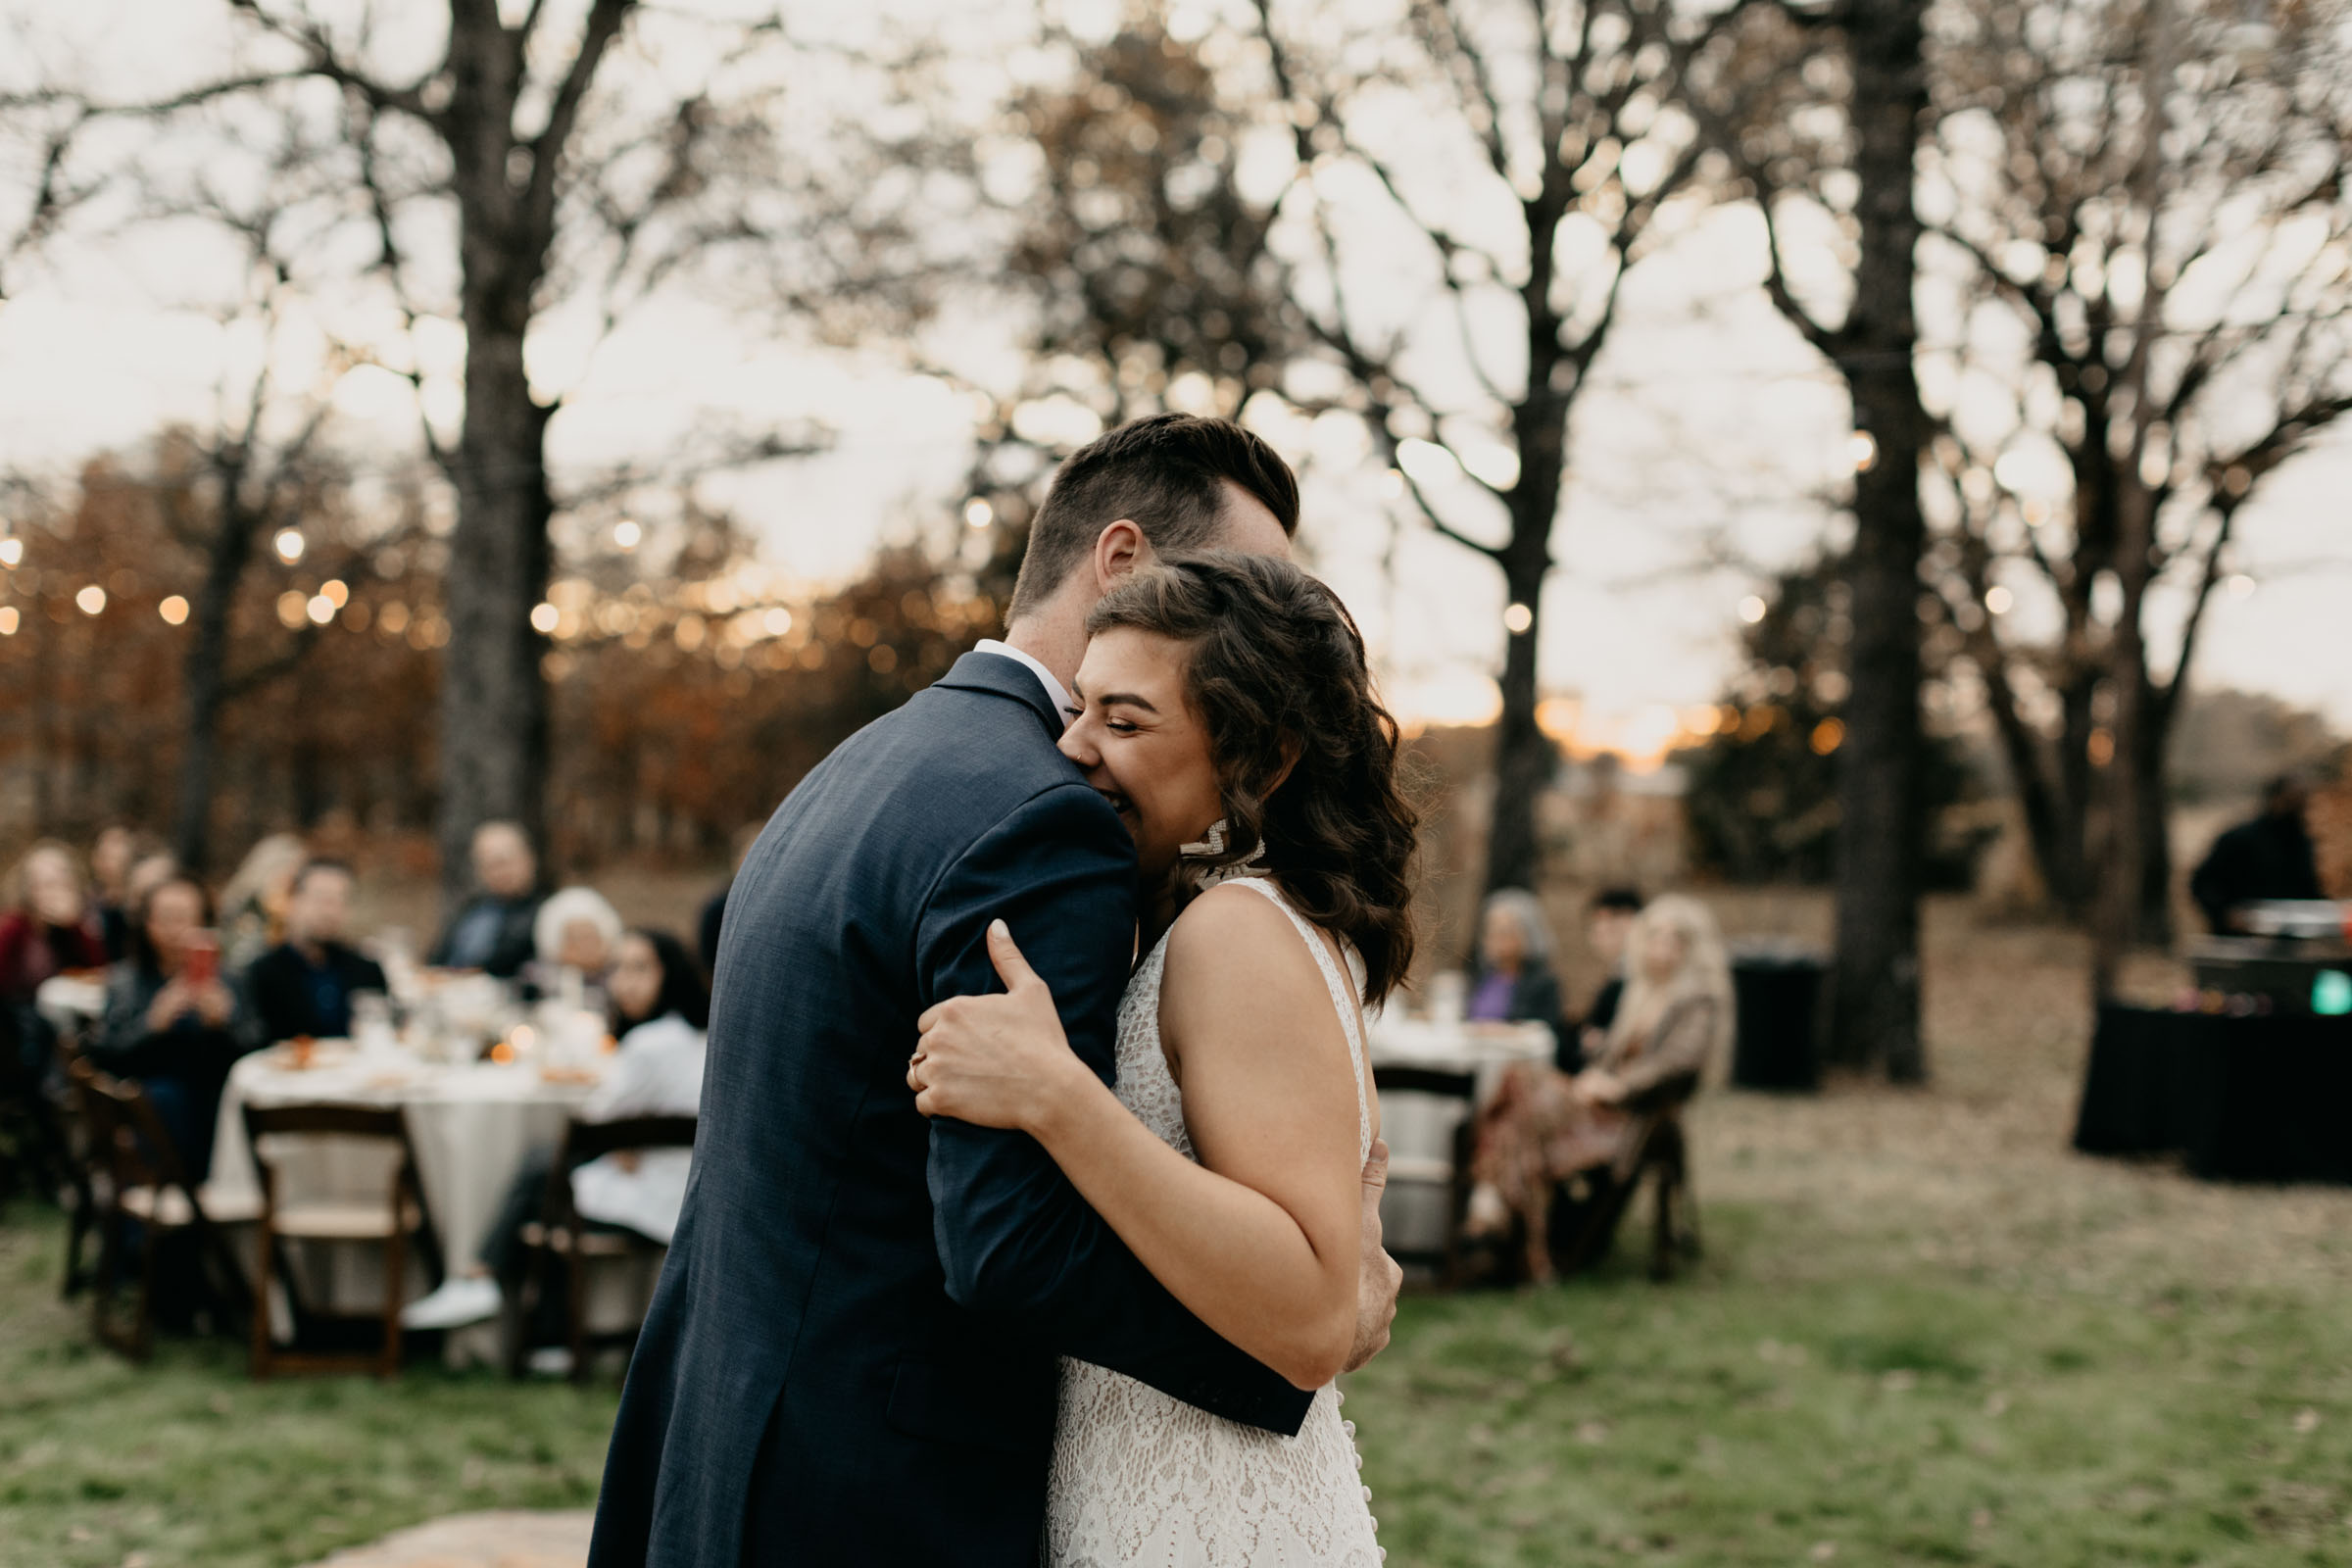 Bride smiling as she shares her first dance with her husband